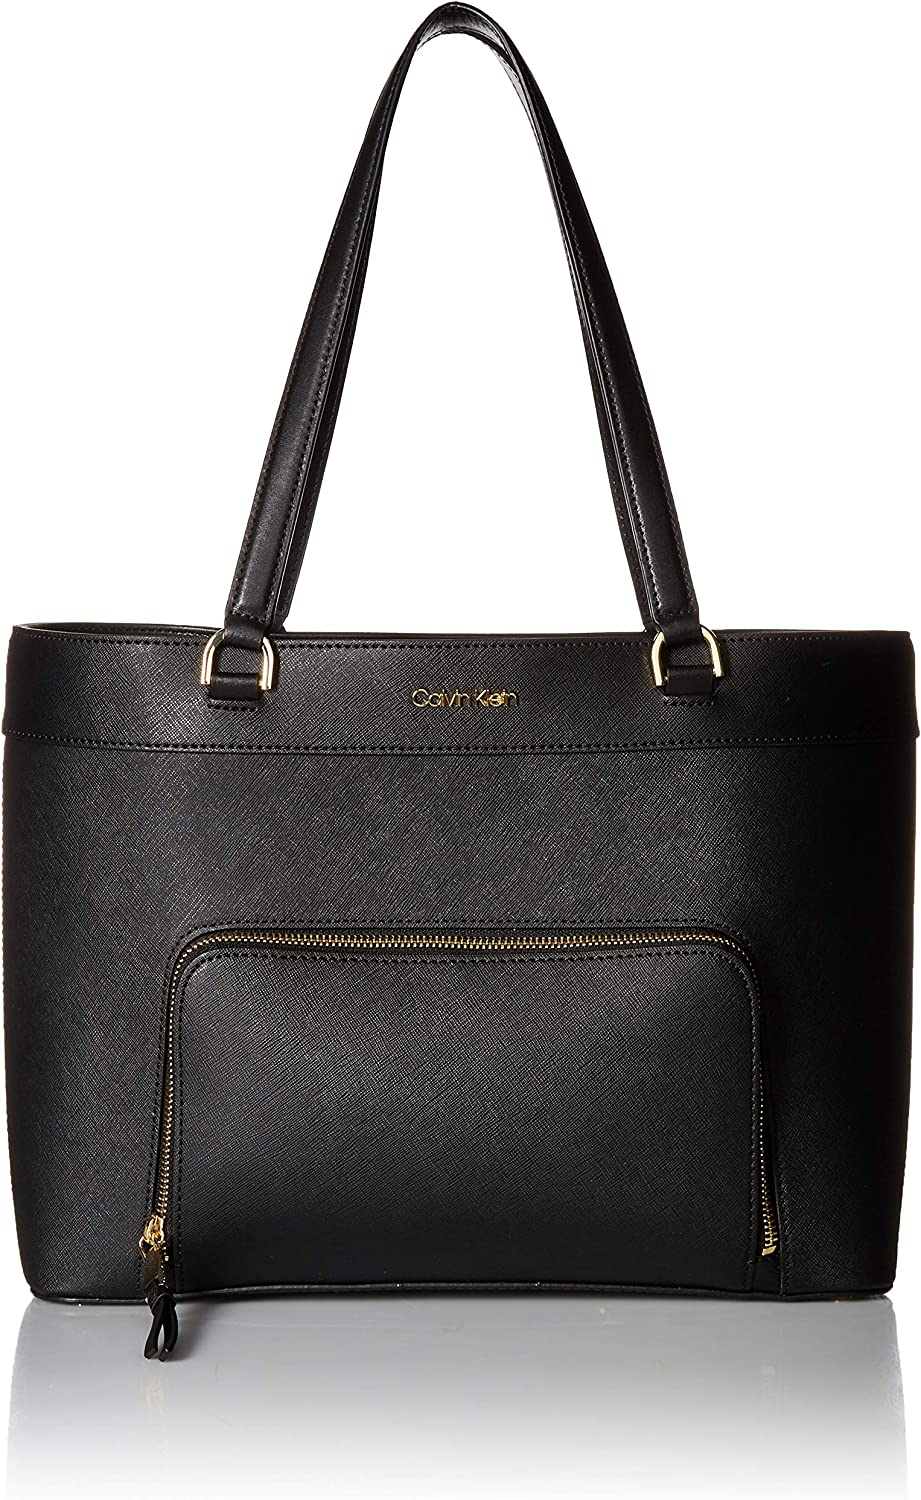 Calvin Klein Louise Saffiano Leather Key Item Tote